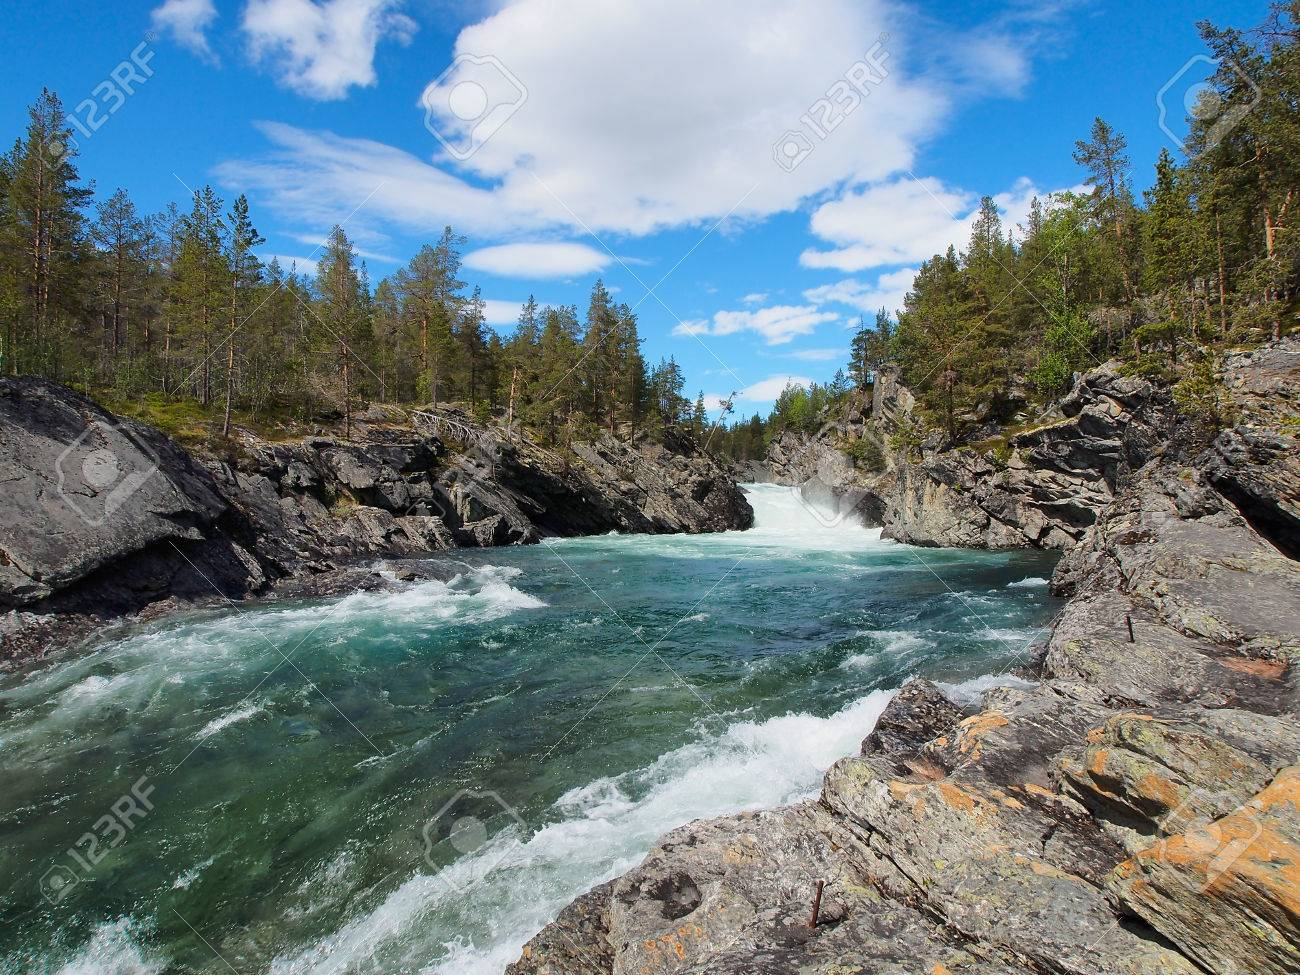 The rapidly flowing river winding through mountains, beautiful canyon in Norway, summer, sunny day - 70748339